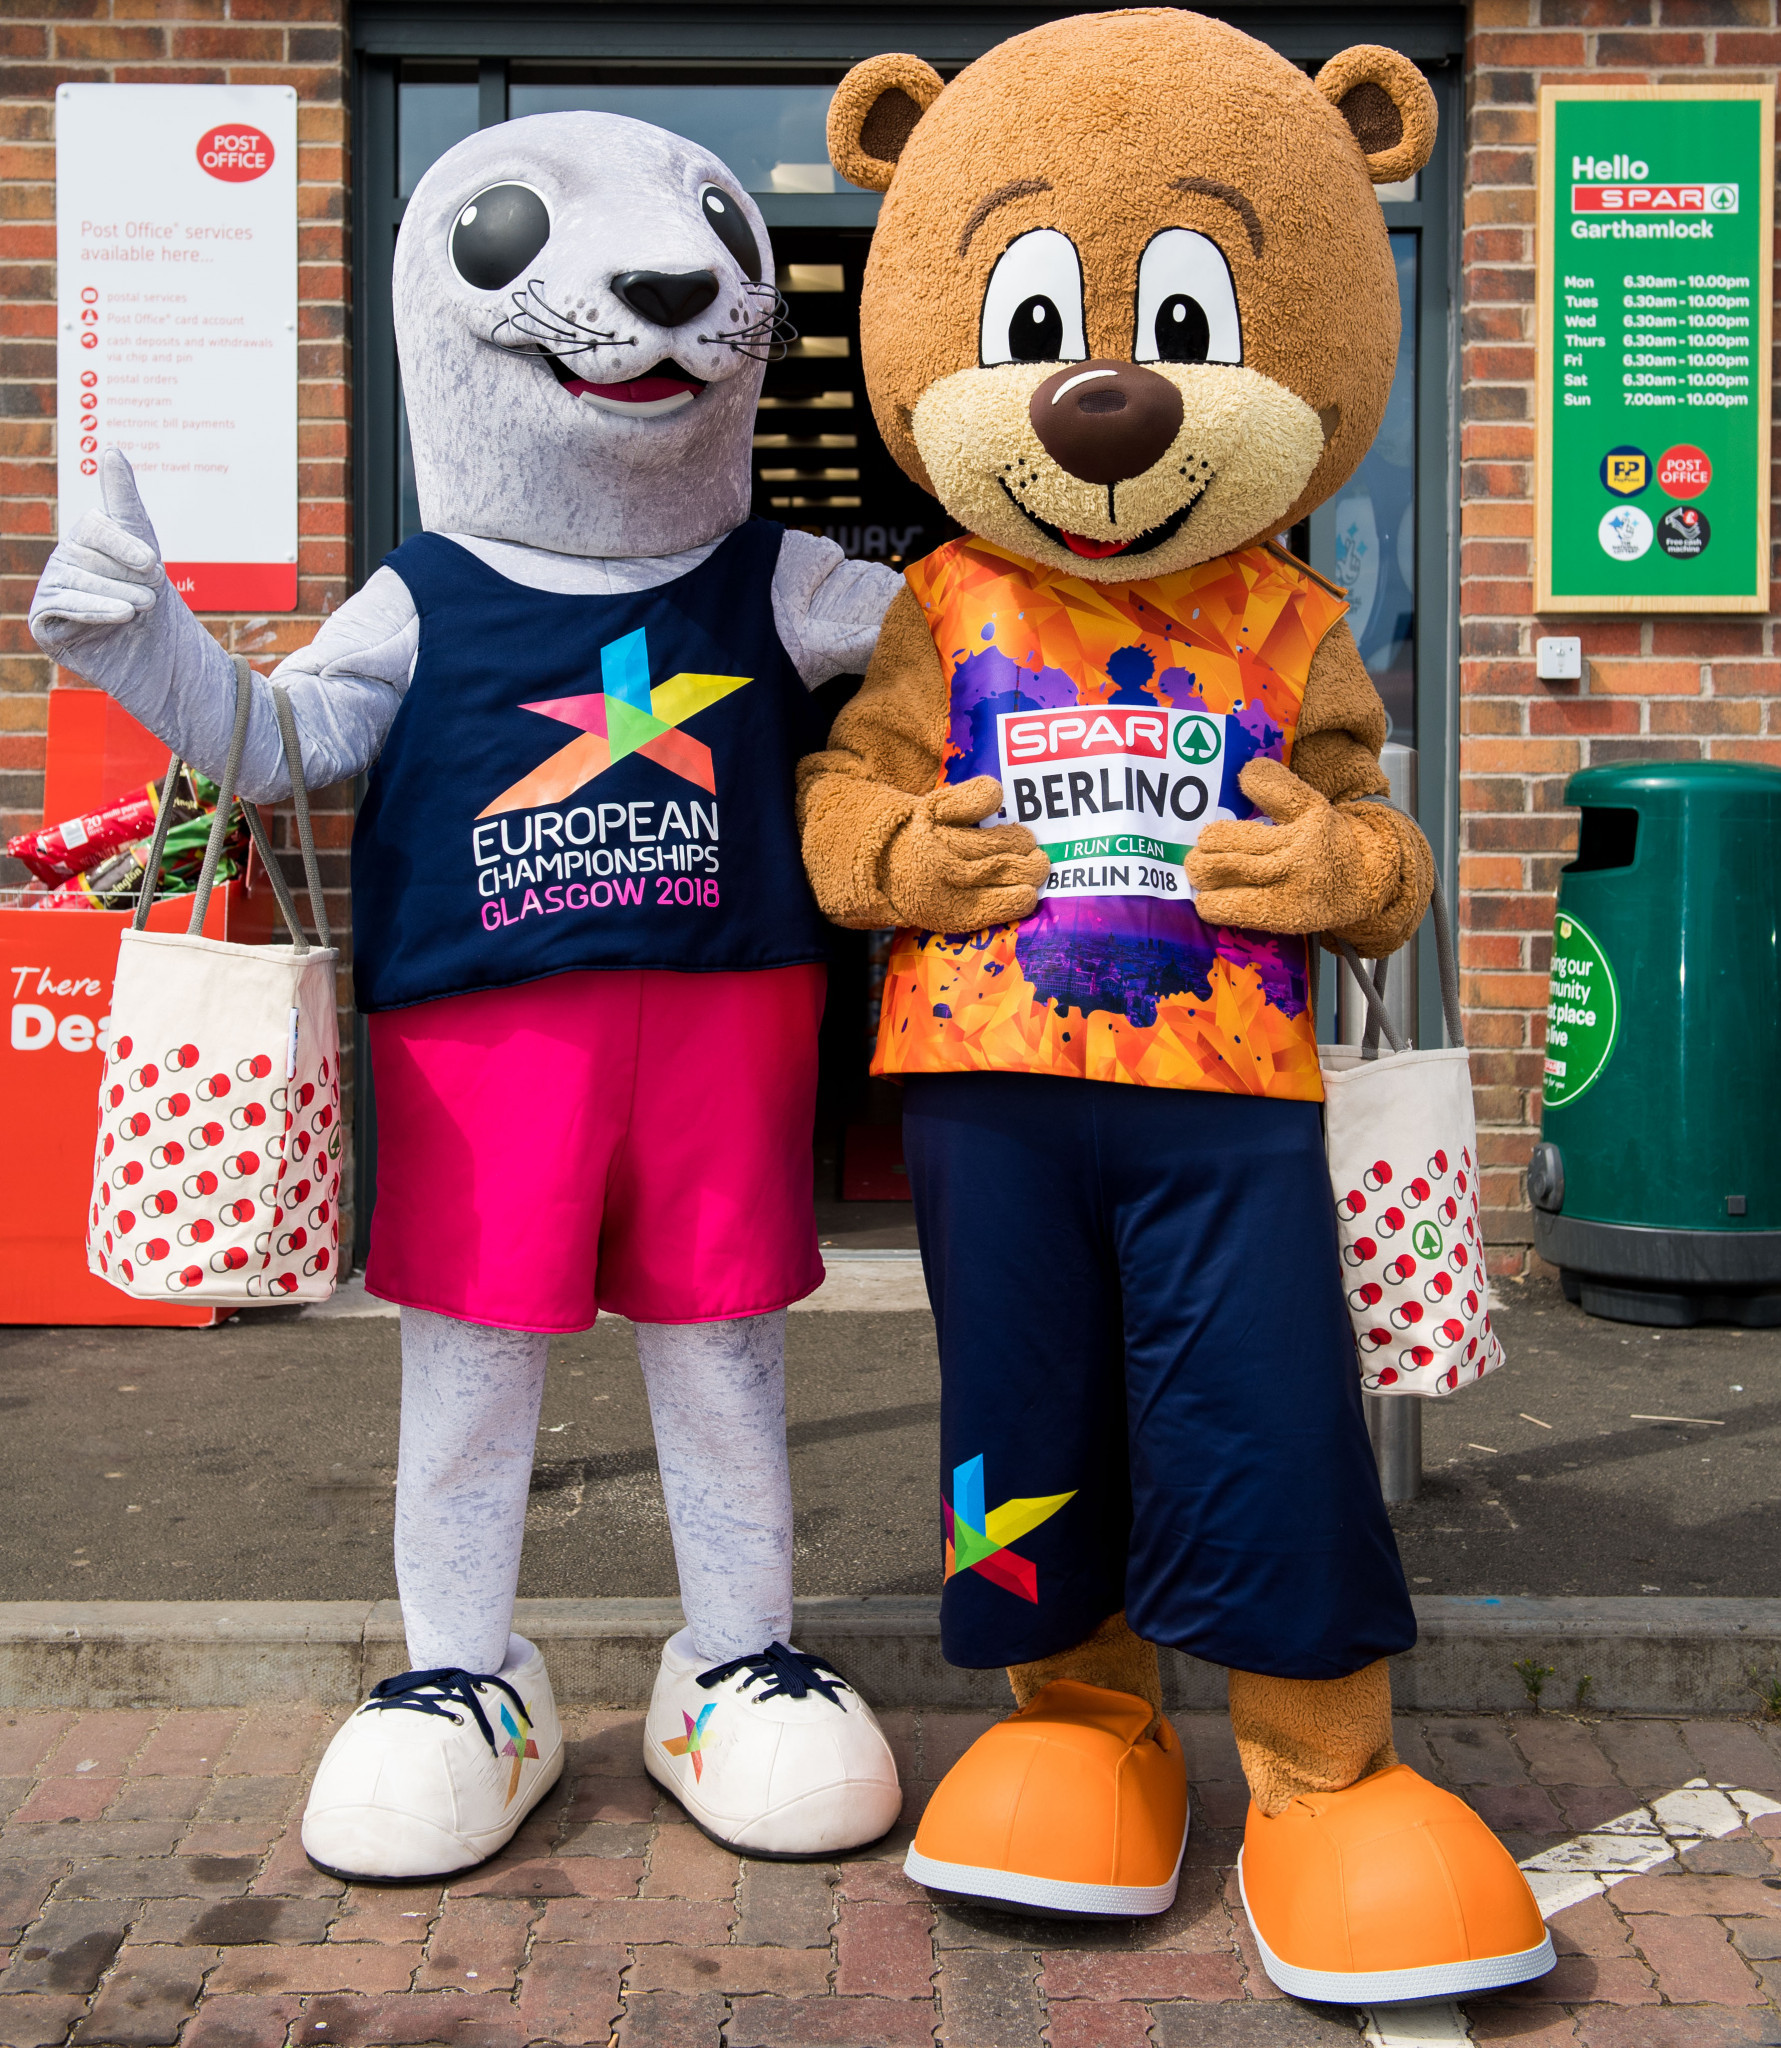 Glasgow and Berlin mascots Bonnie, left, and Berlino, right, visited a SPAR shop in the Scottish city to mark the arrival of the European Championships latest sponsor ©Glasgow 2018